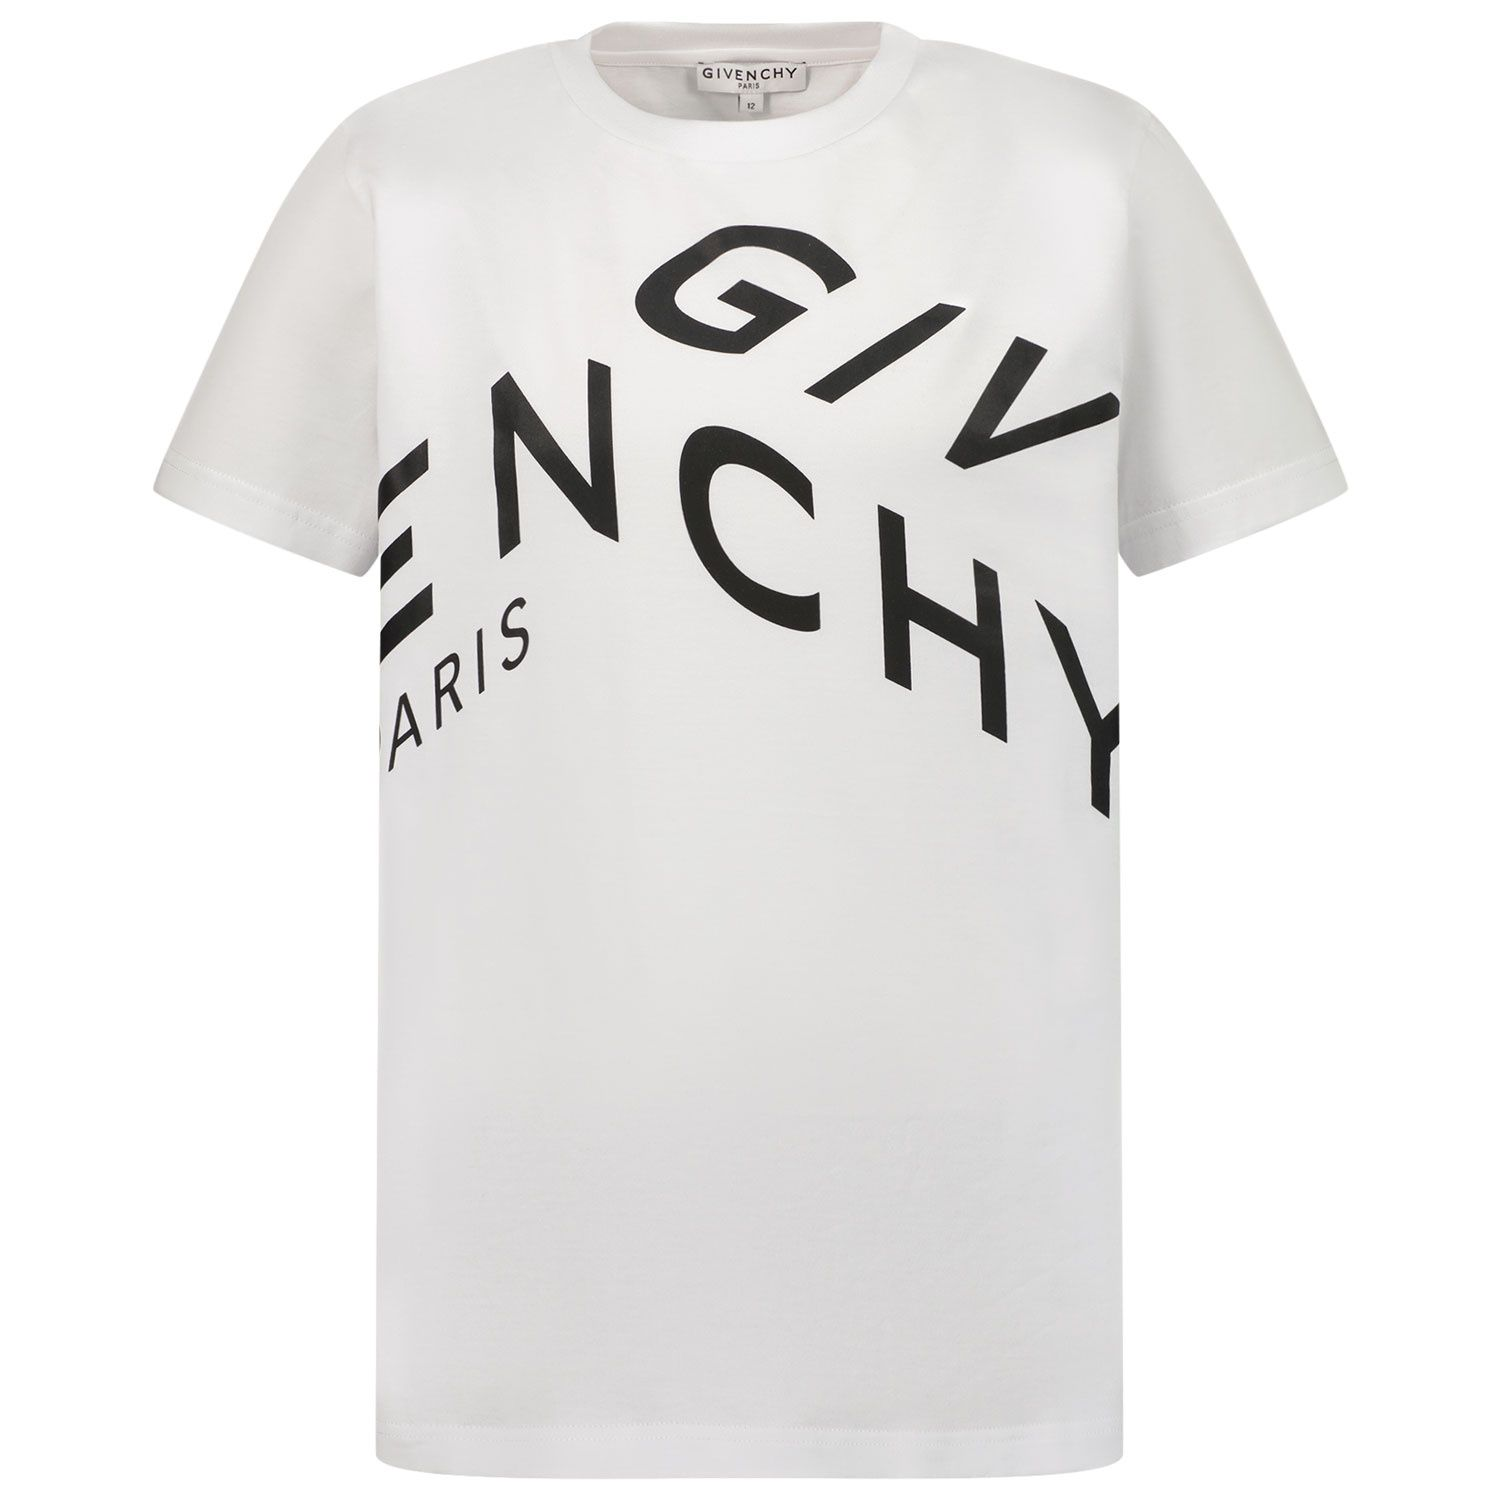 Picture of Givenchy H25245 kids t-shirt white